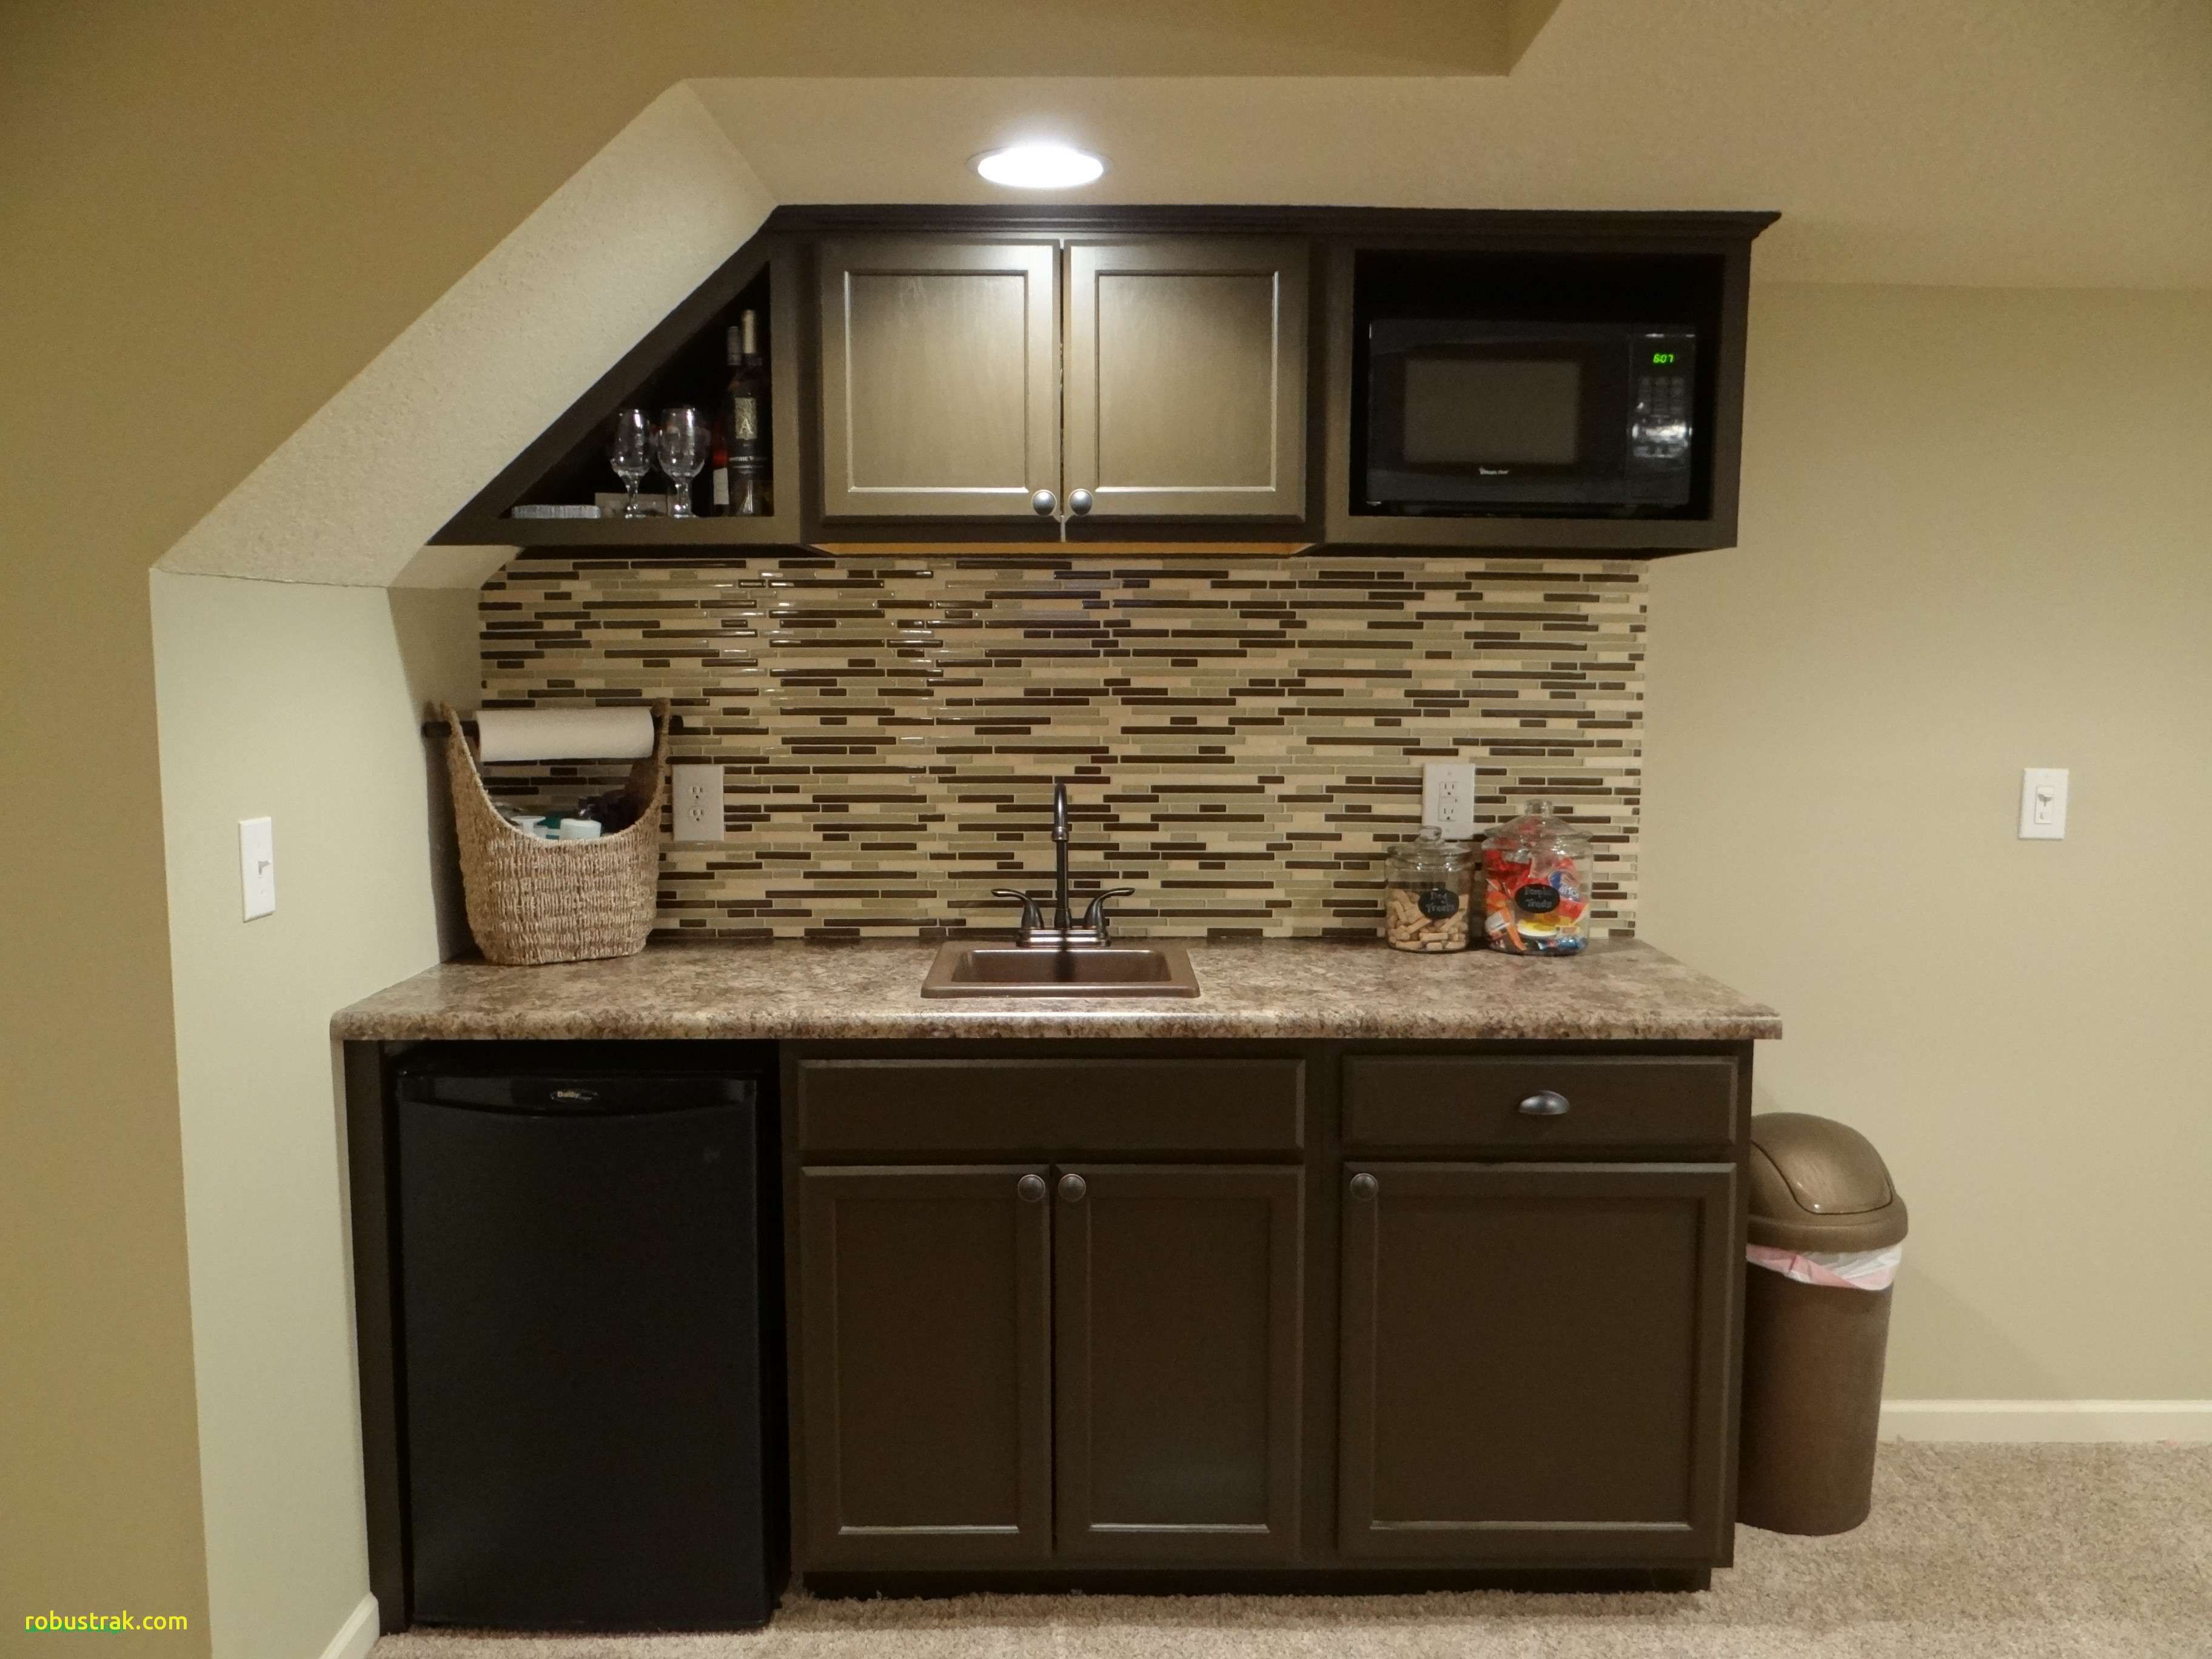 Sink Wet Bar With And Refrigerator Bat Under Stairs Used Stock Cabinets Countertop From Lowes Painted